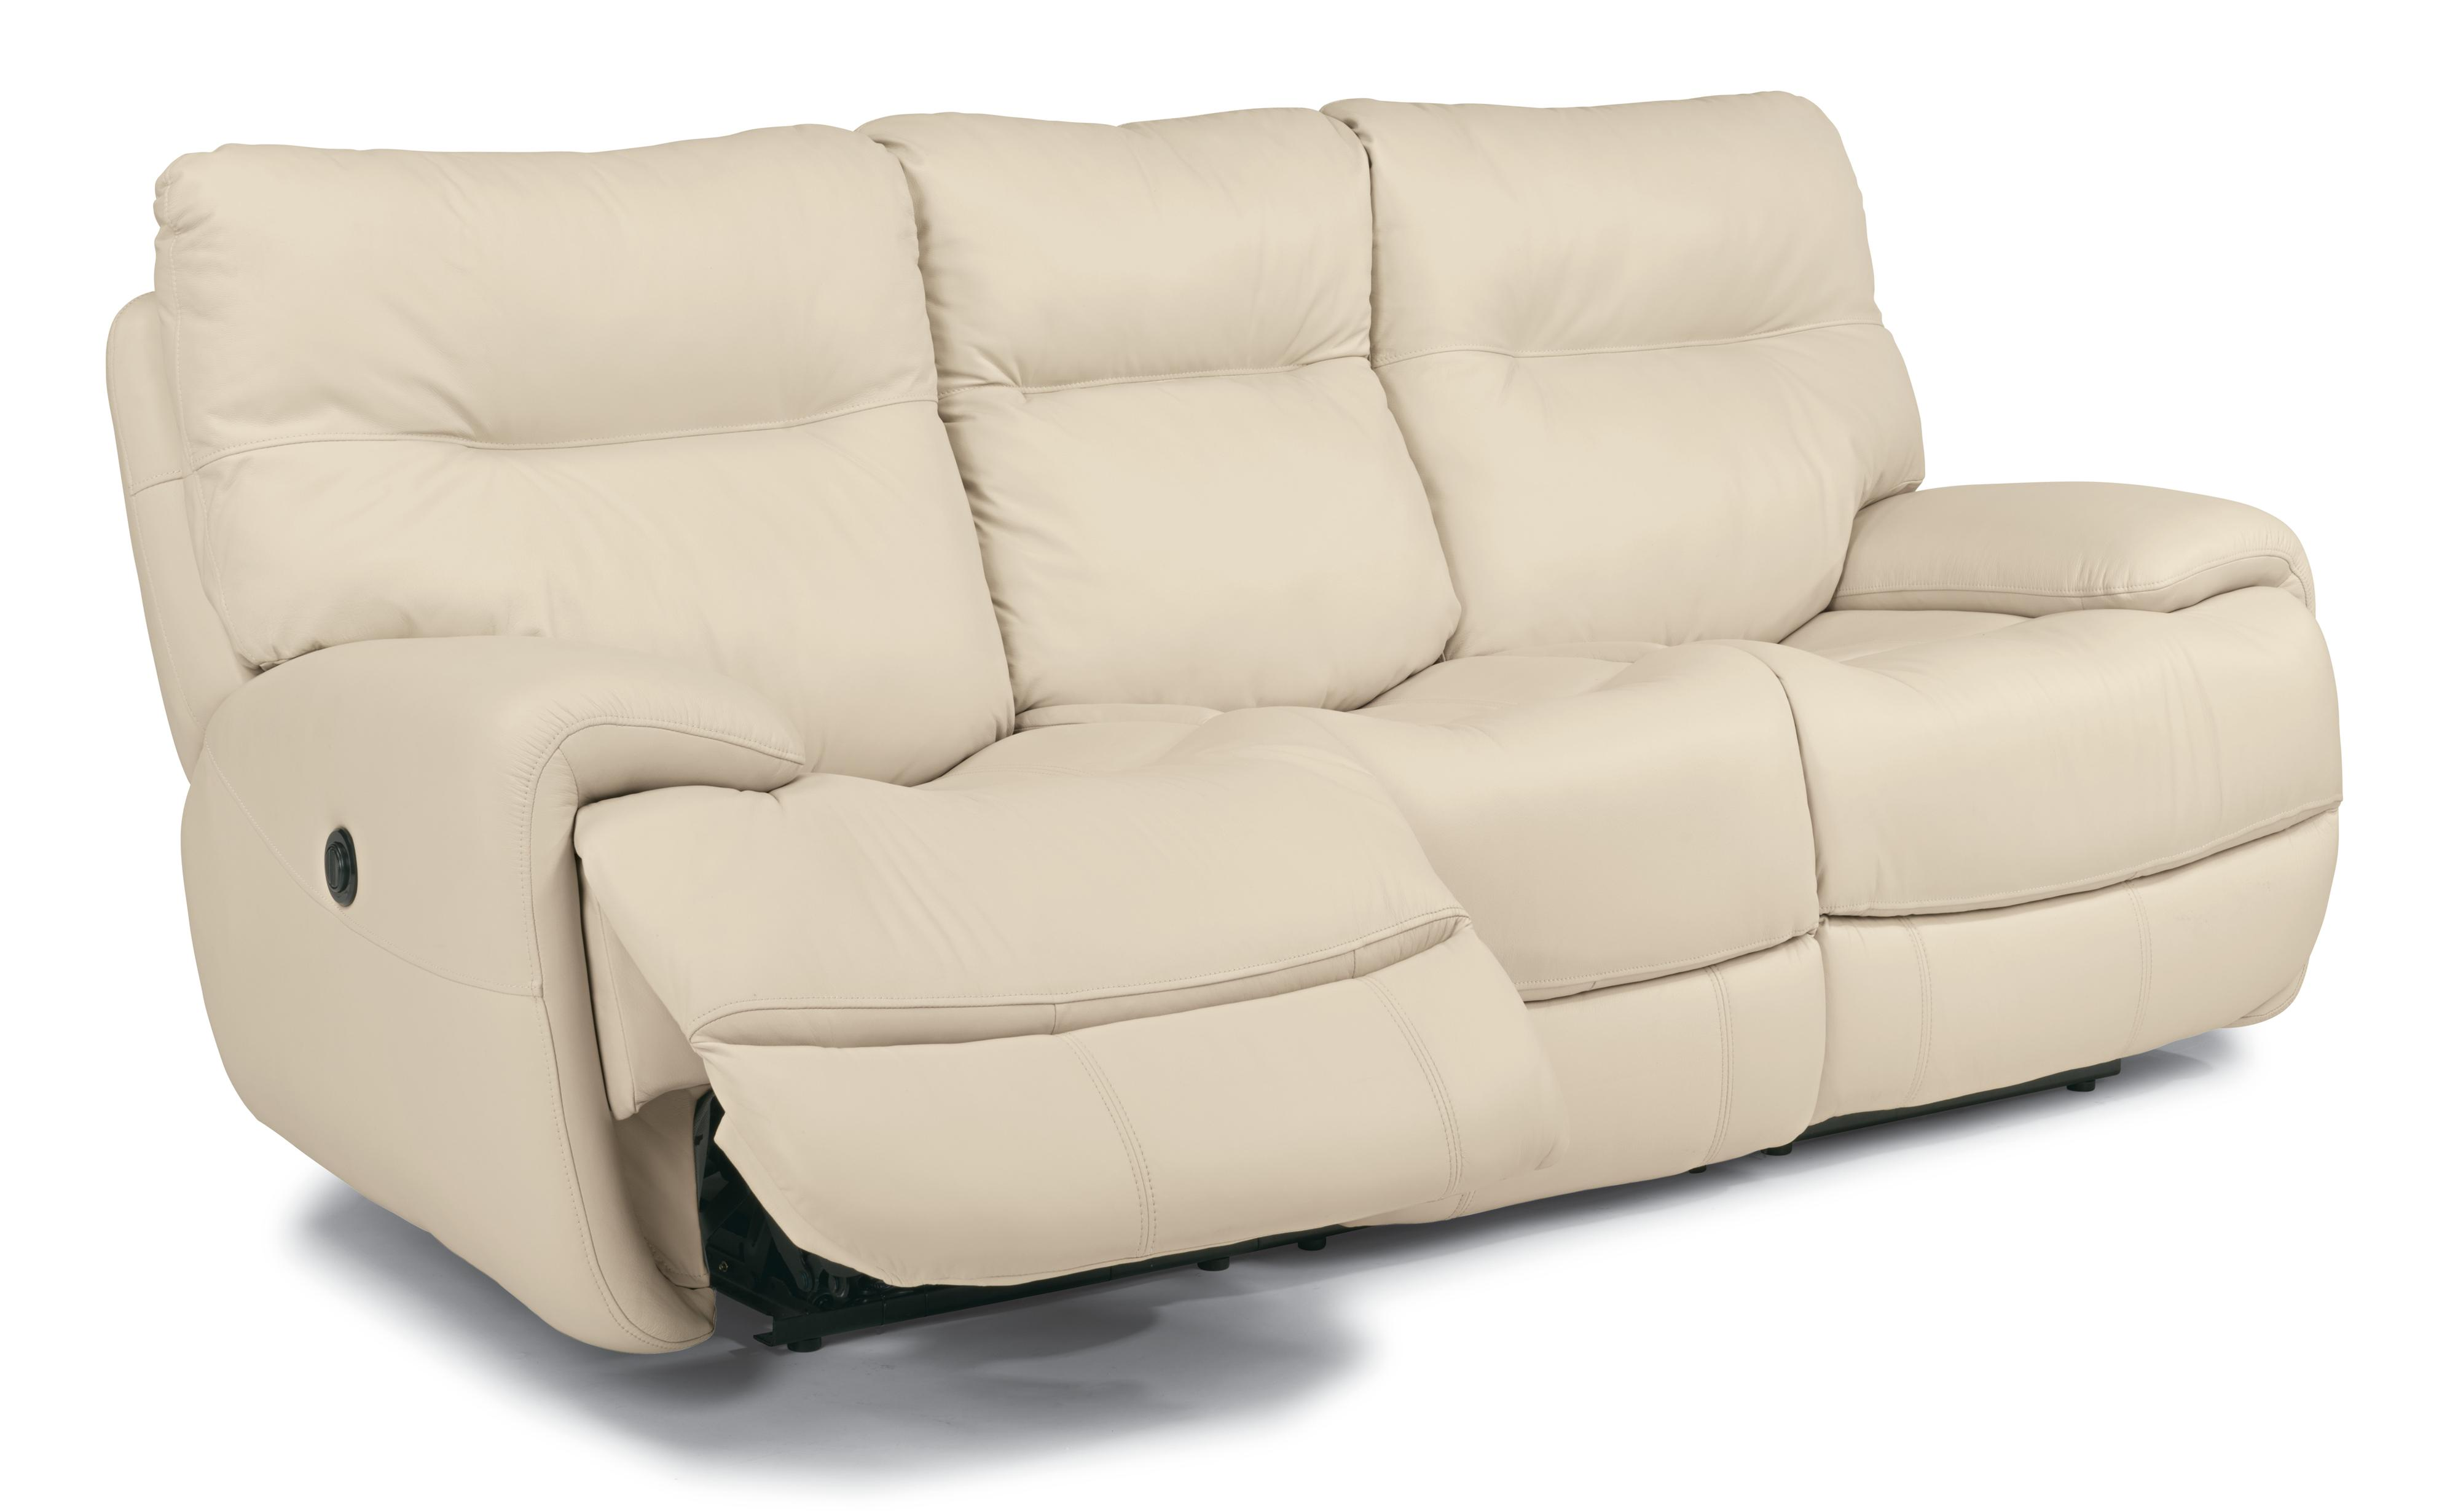 Flexsteel Latitudes Evian Power Reclining Sofa with Fold Down